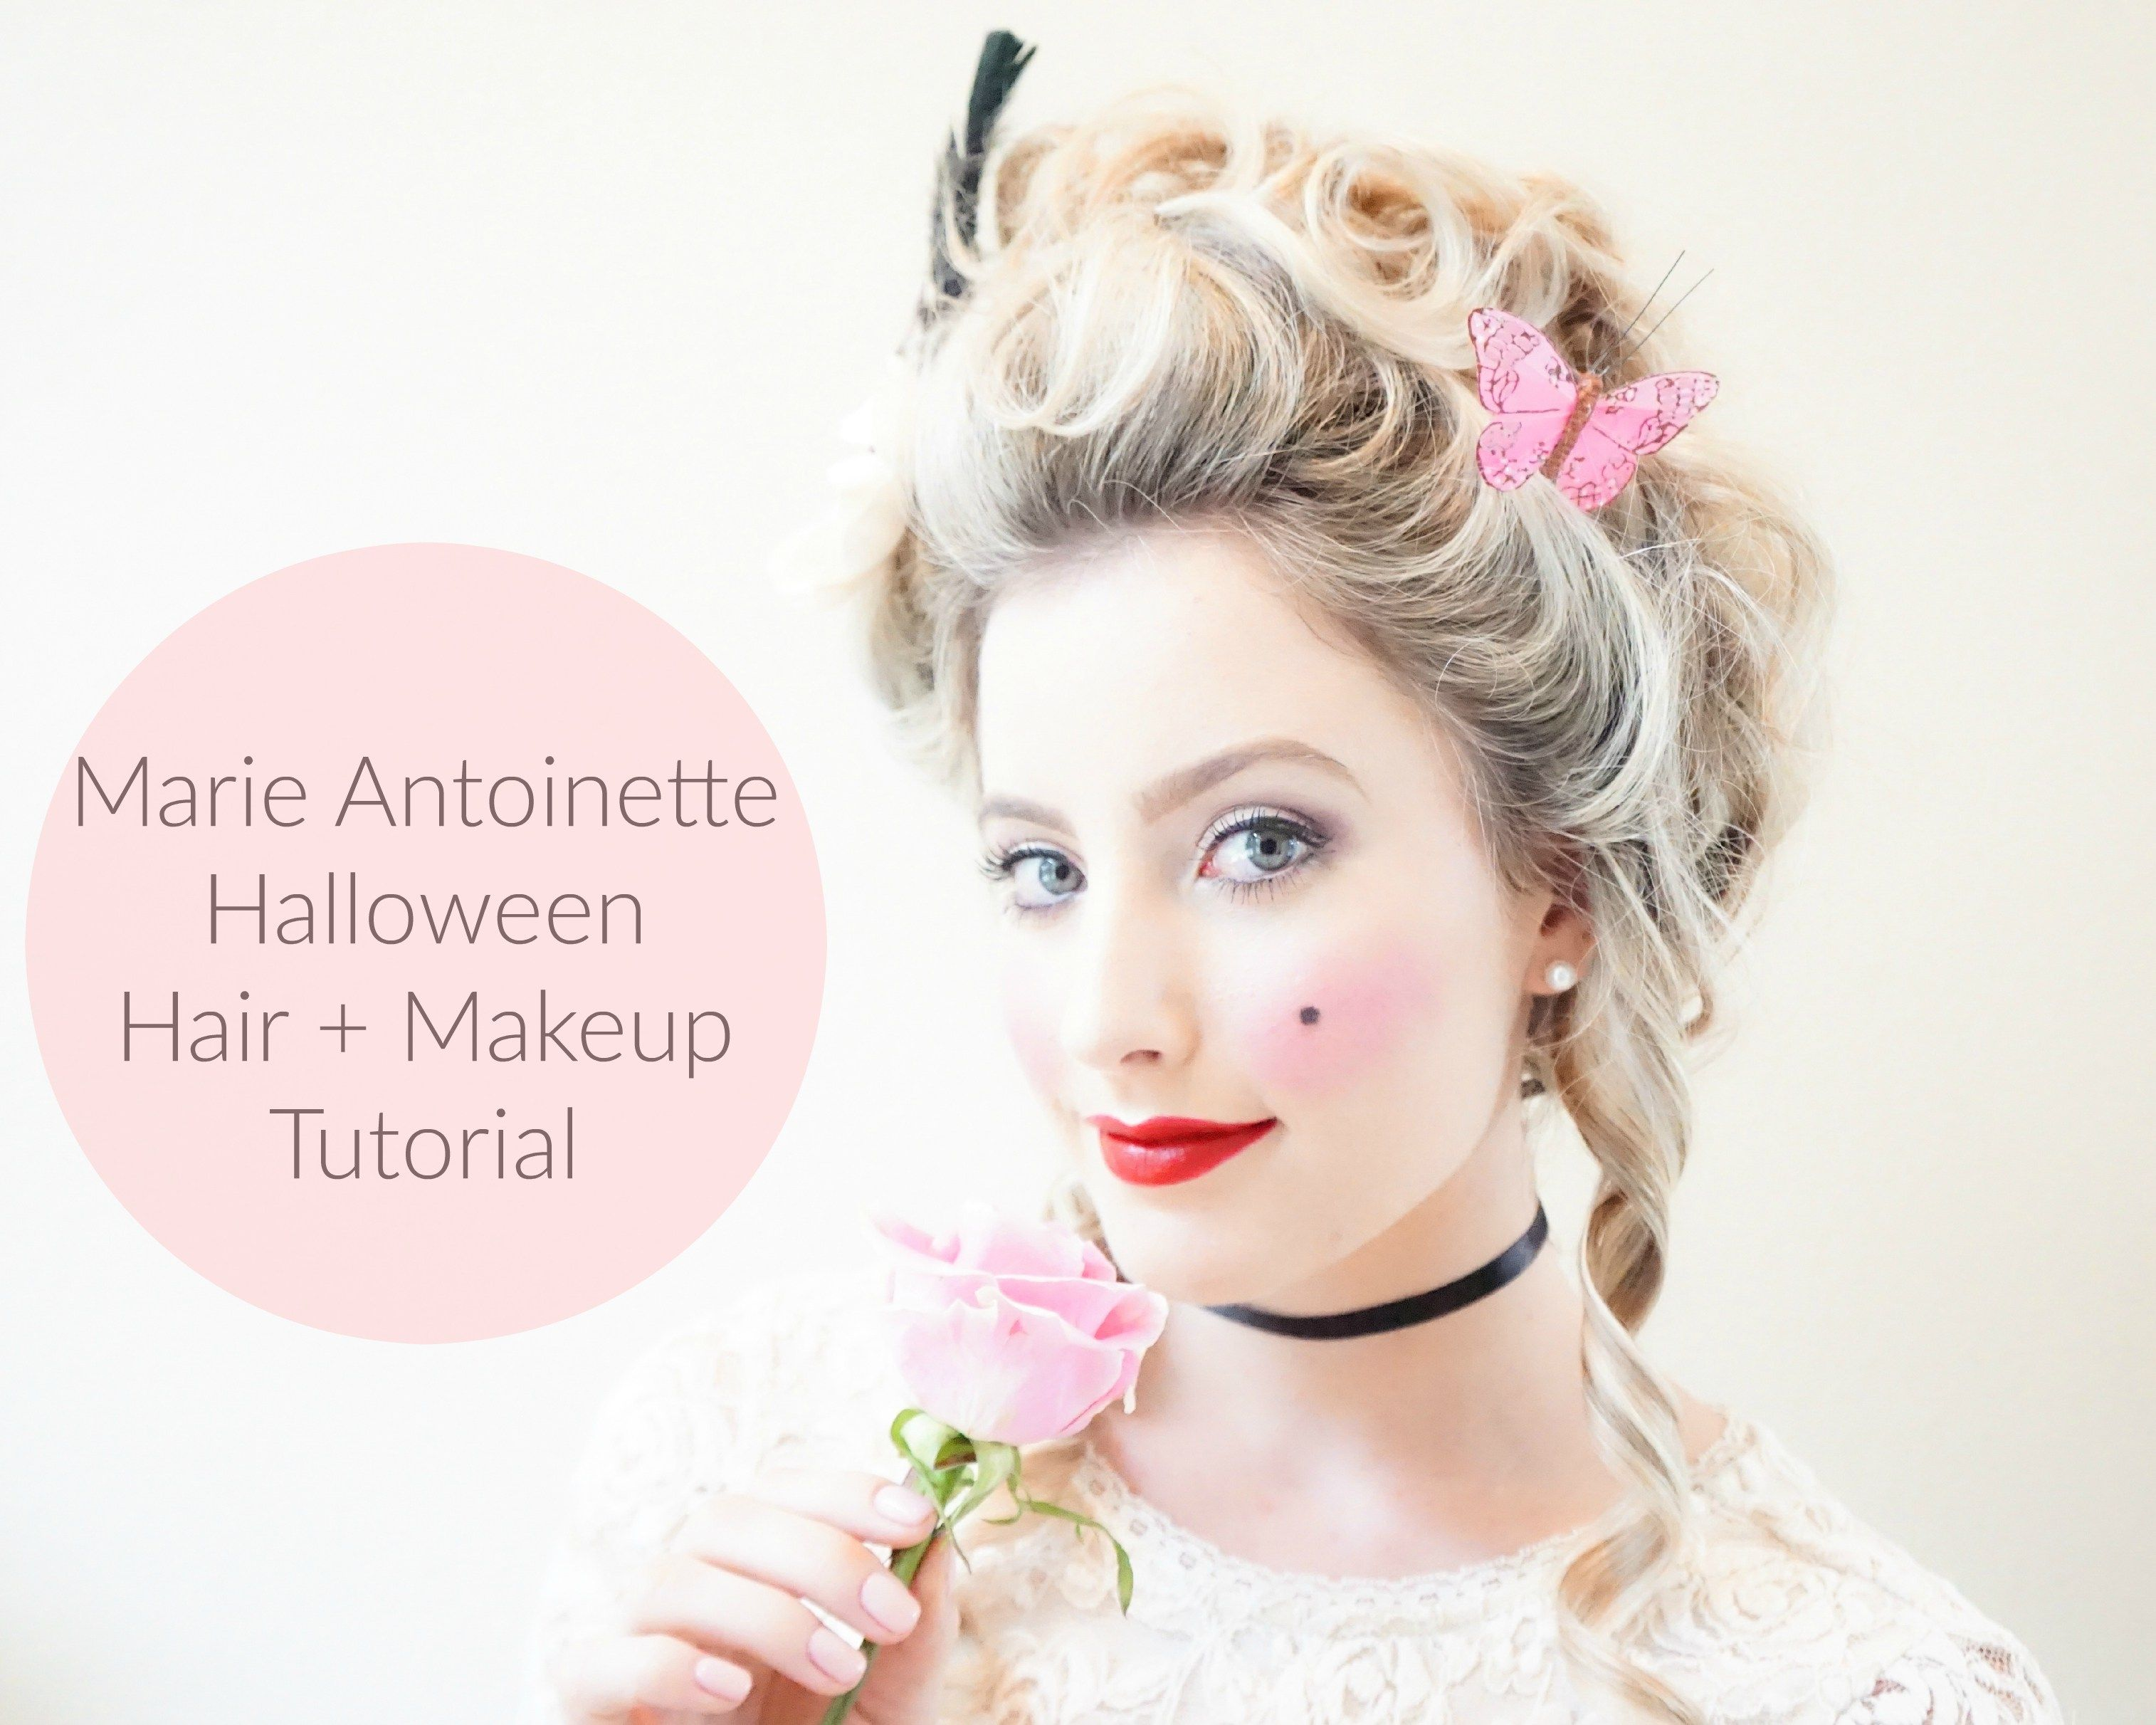 marie antoinette halloween hair makeup tutorial beauty hairdo 39 s barock kost m frisuren. Black Bedroom Furniture Sets. Home Design Ideas